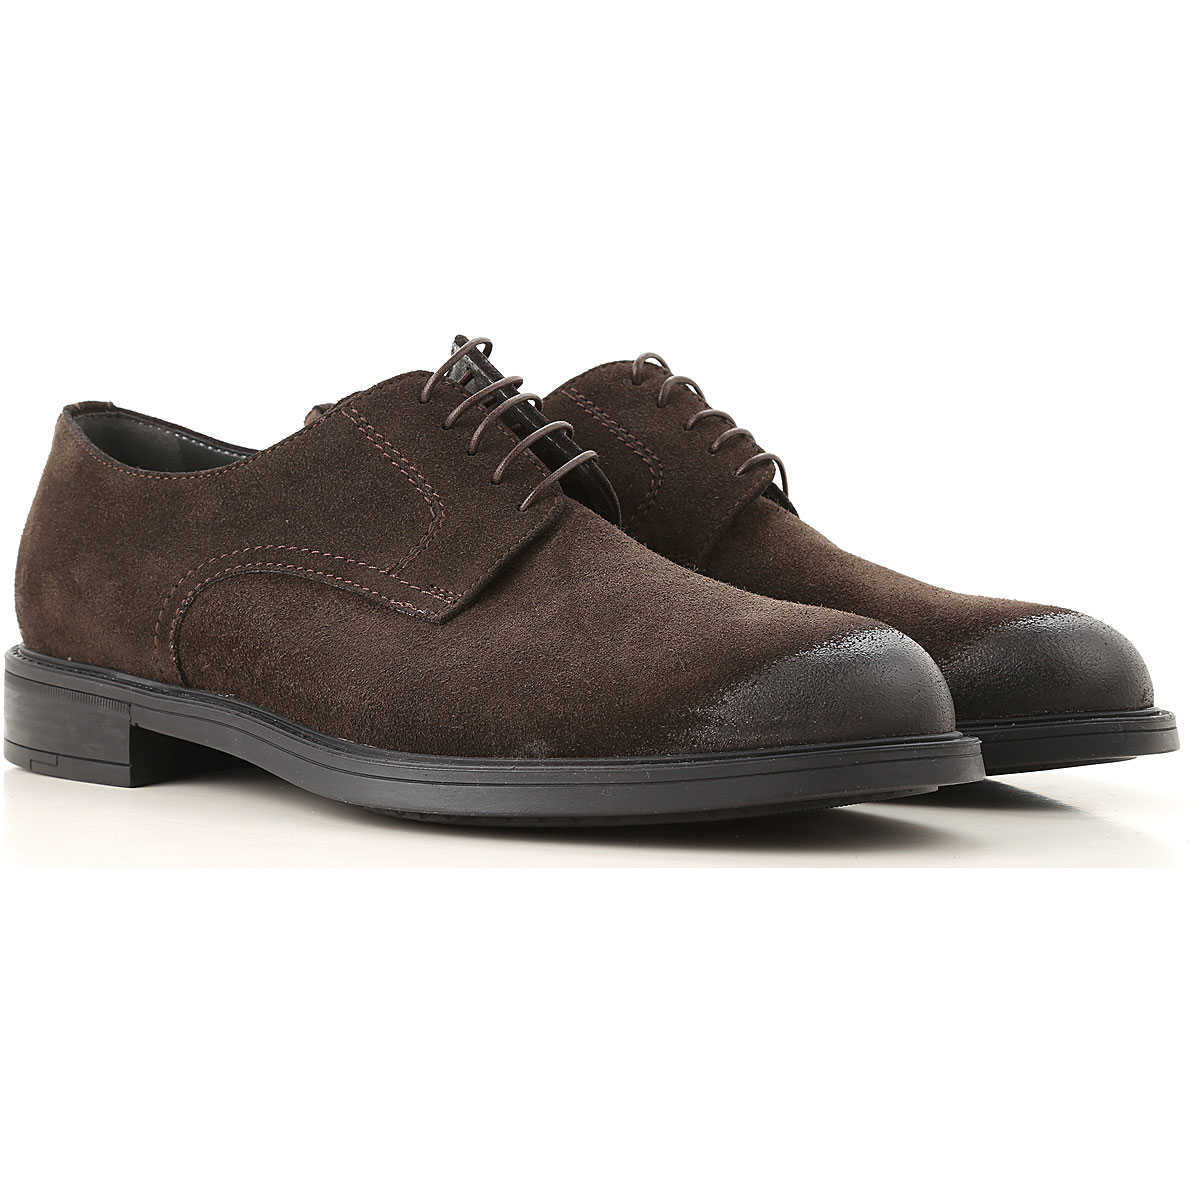 Moreschi Lace Up Shoes for Men Oxfords Derbies and Brogues On Sale SE - GOOFASH